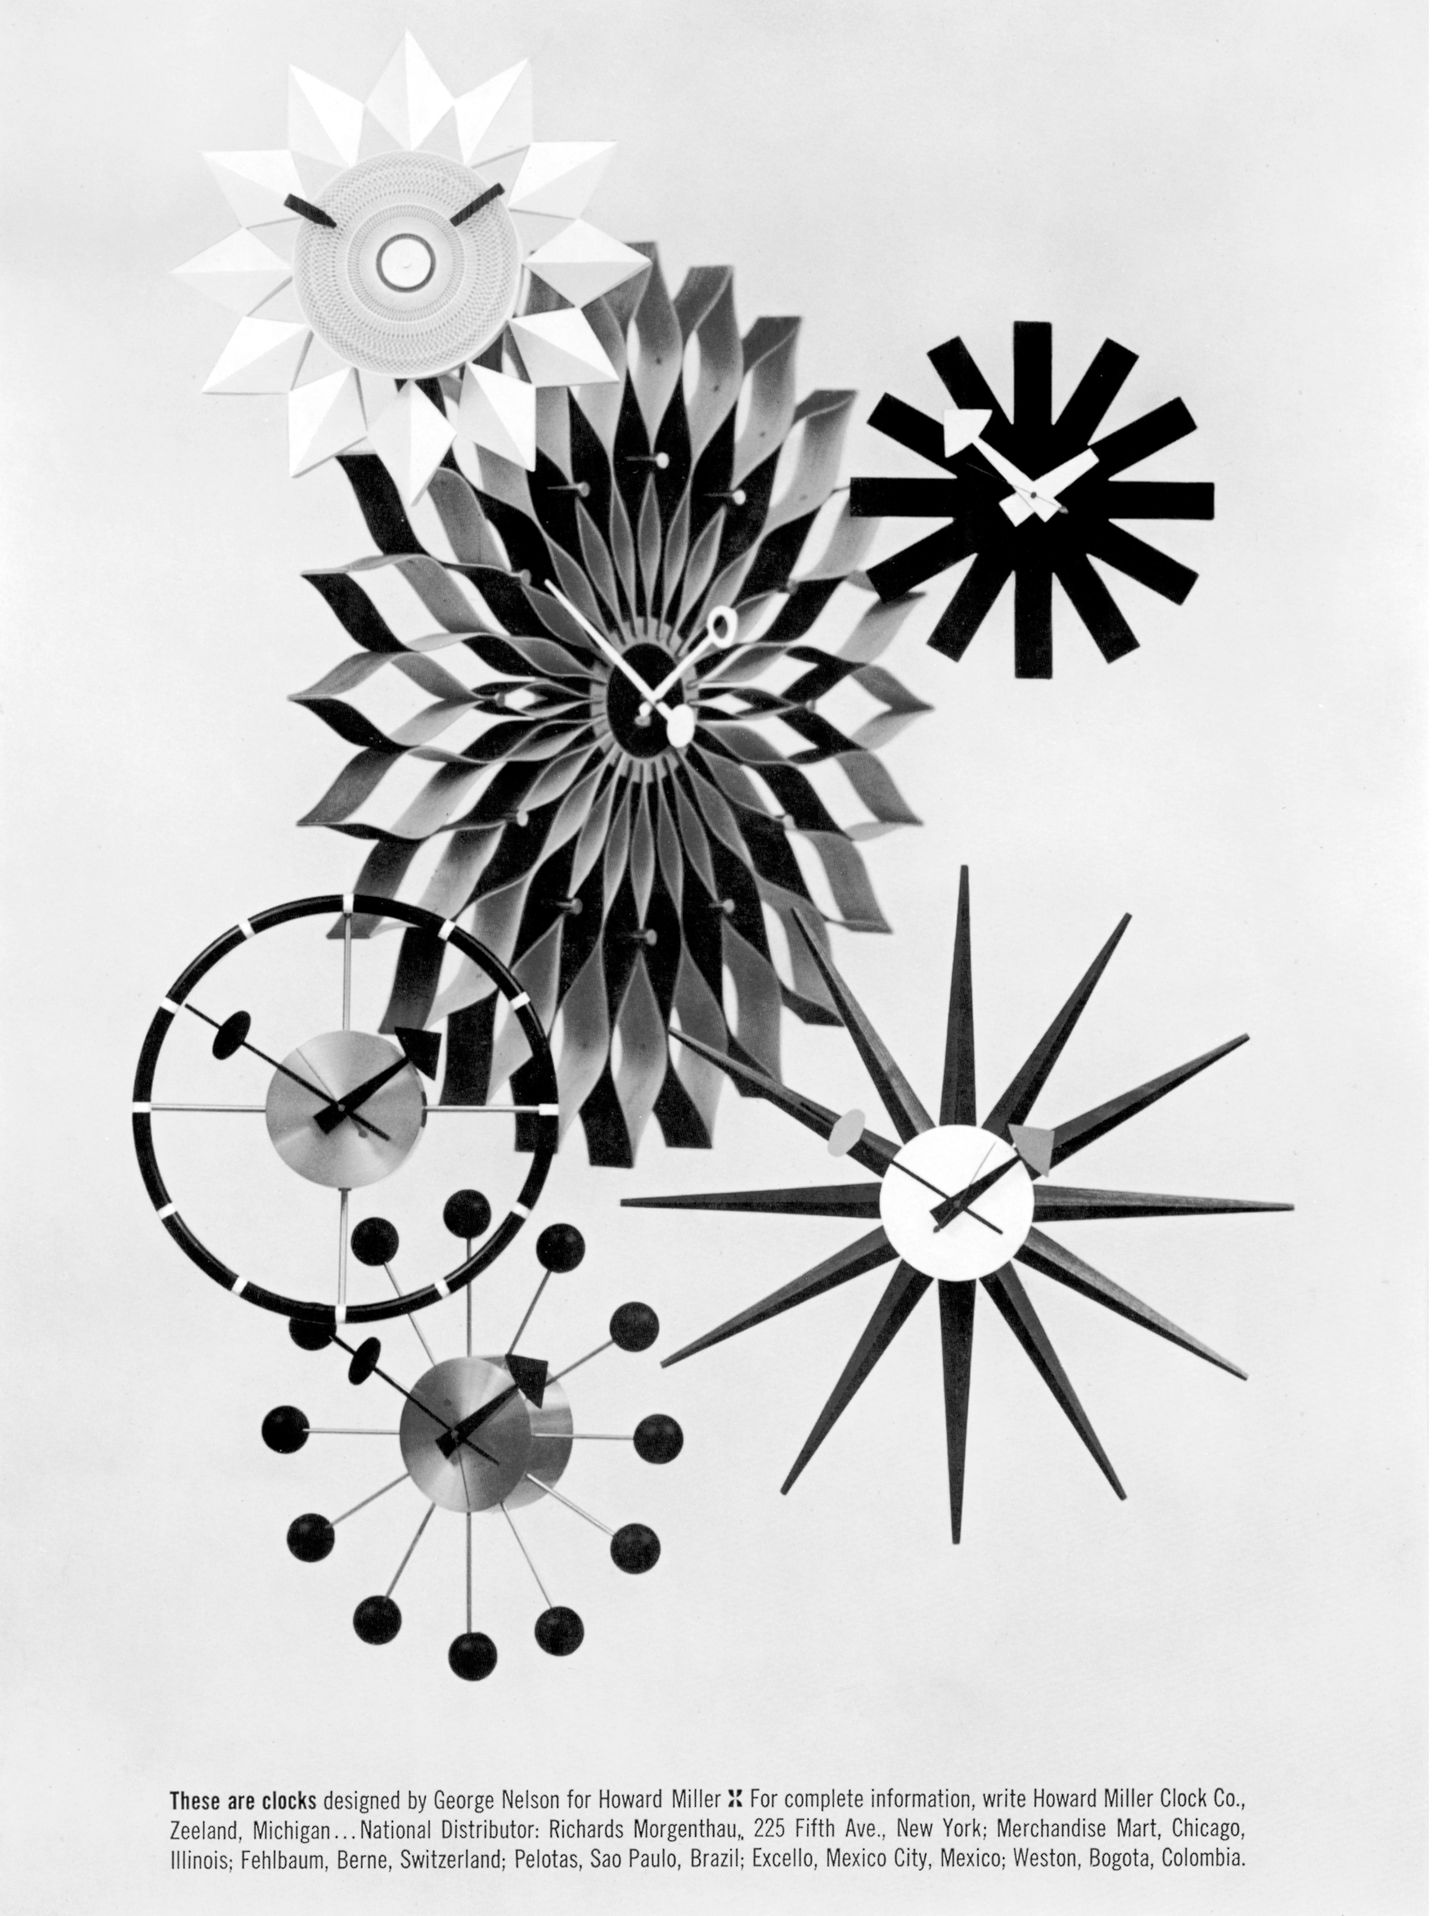 Vitra wall clocks equipped with high quality quartz movements they offer a refreshing alternative to conventional clocks the perfect model can be found for every occasion amipublicfo Images